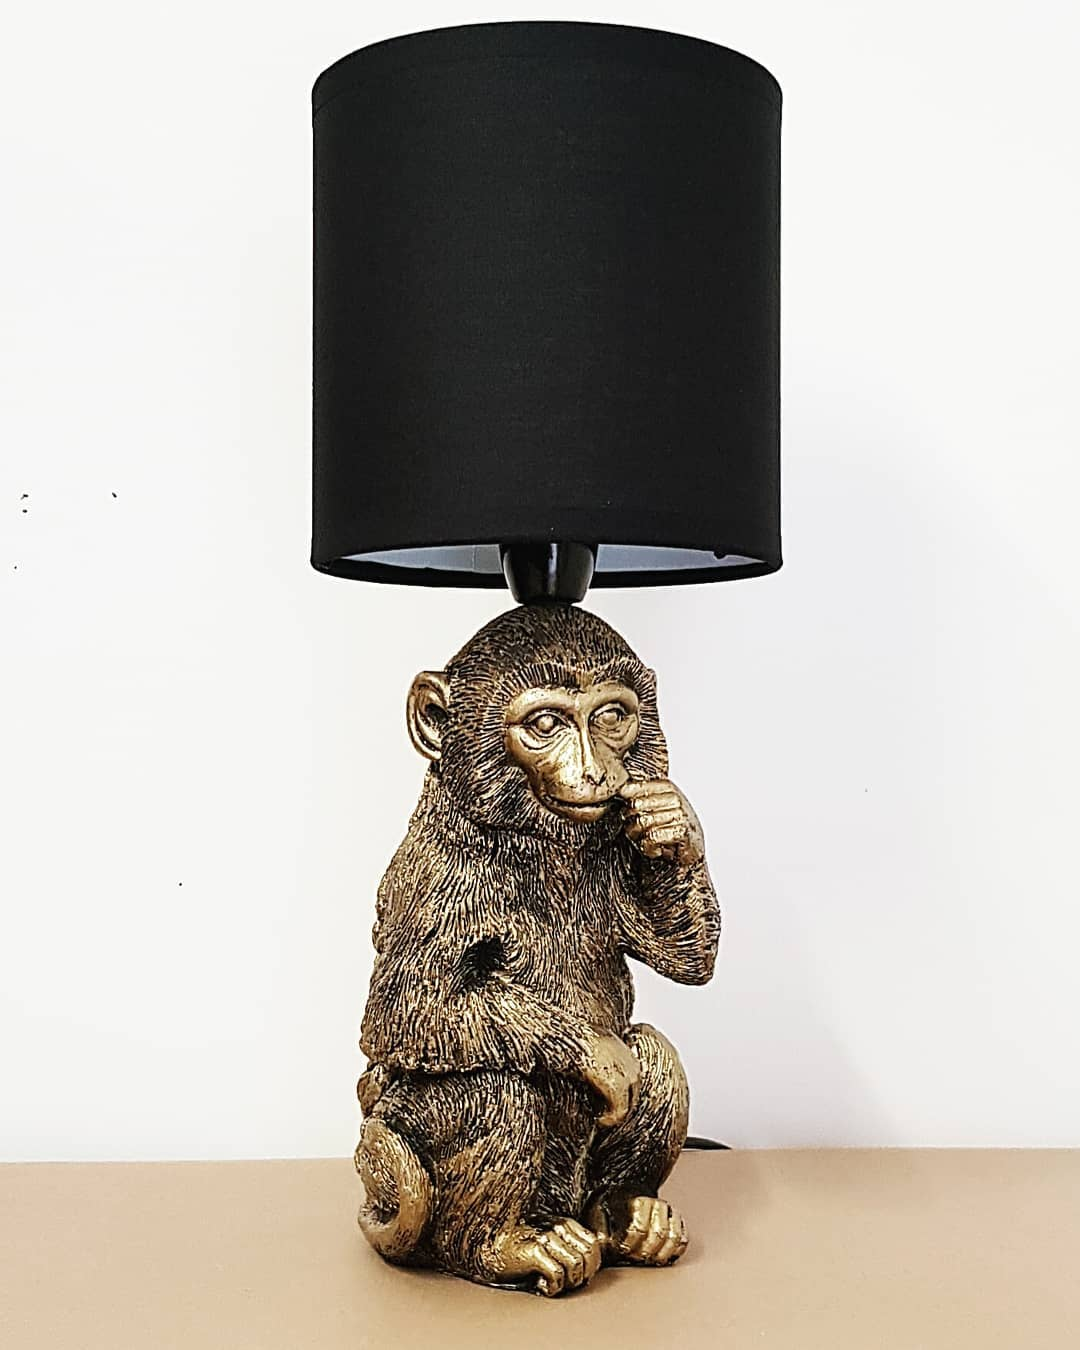 Black and Gold Monkey Lamp.jpg